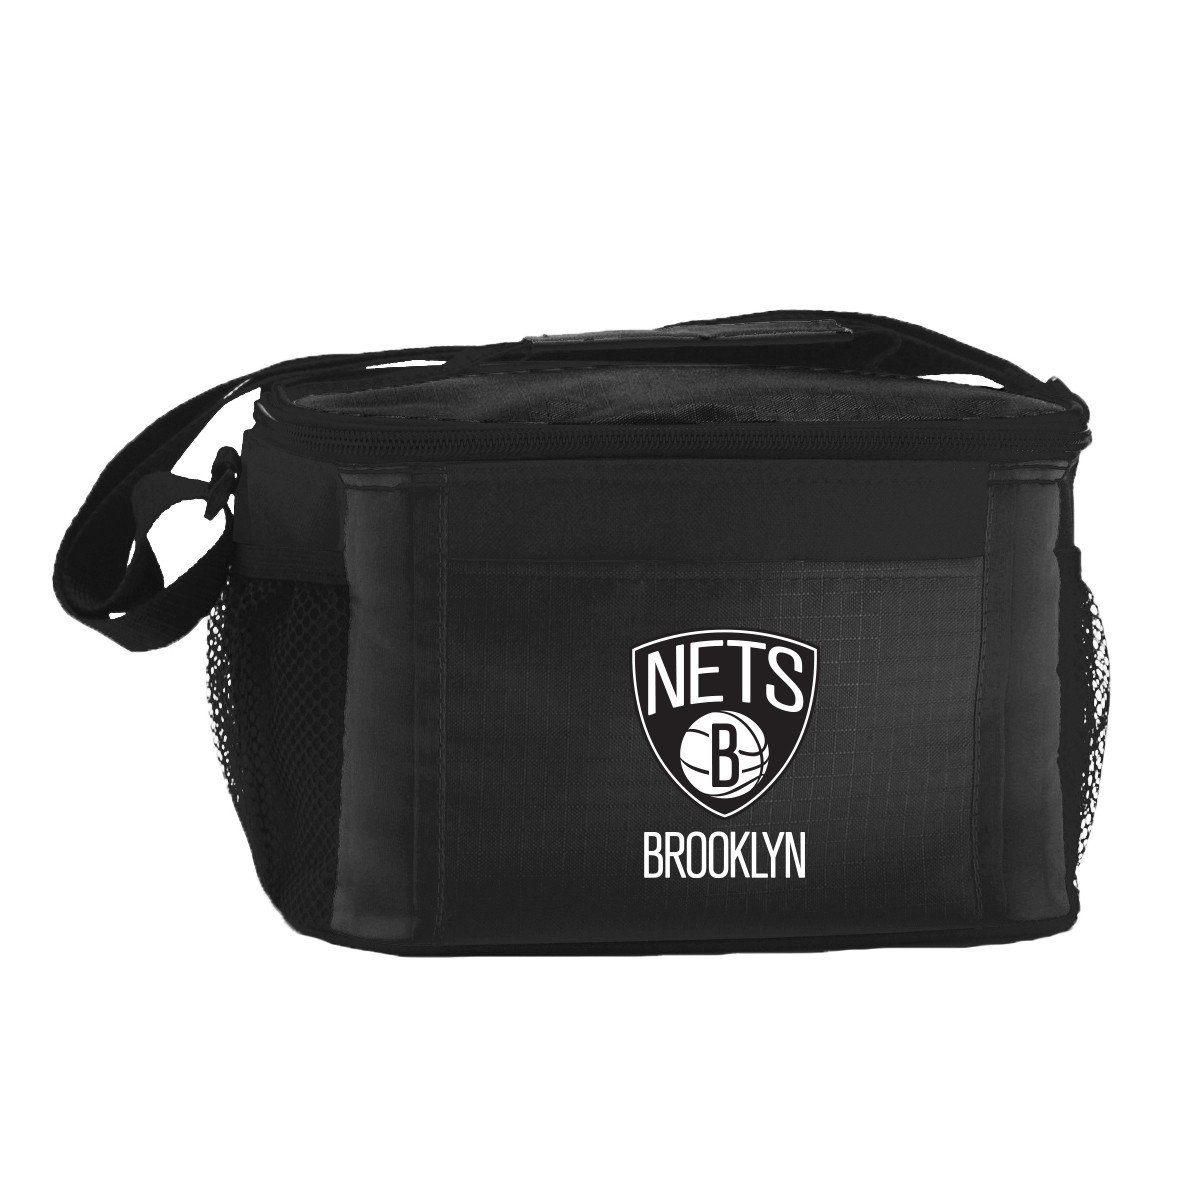 NBA Brooklyn Nets Insulated Lunch Cooler Bag with Zipper Closure, Black